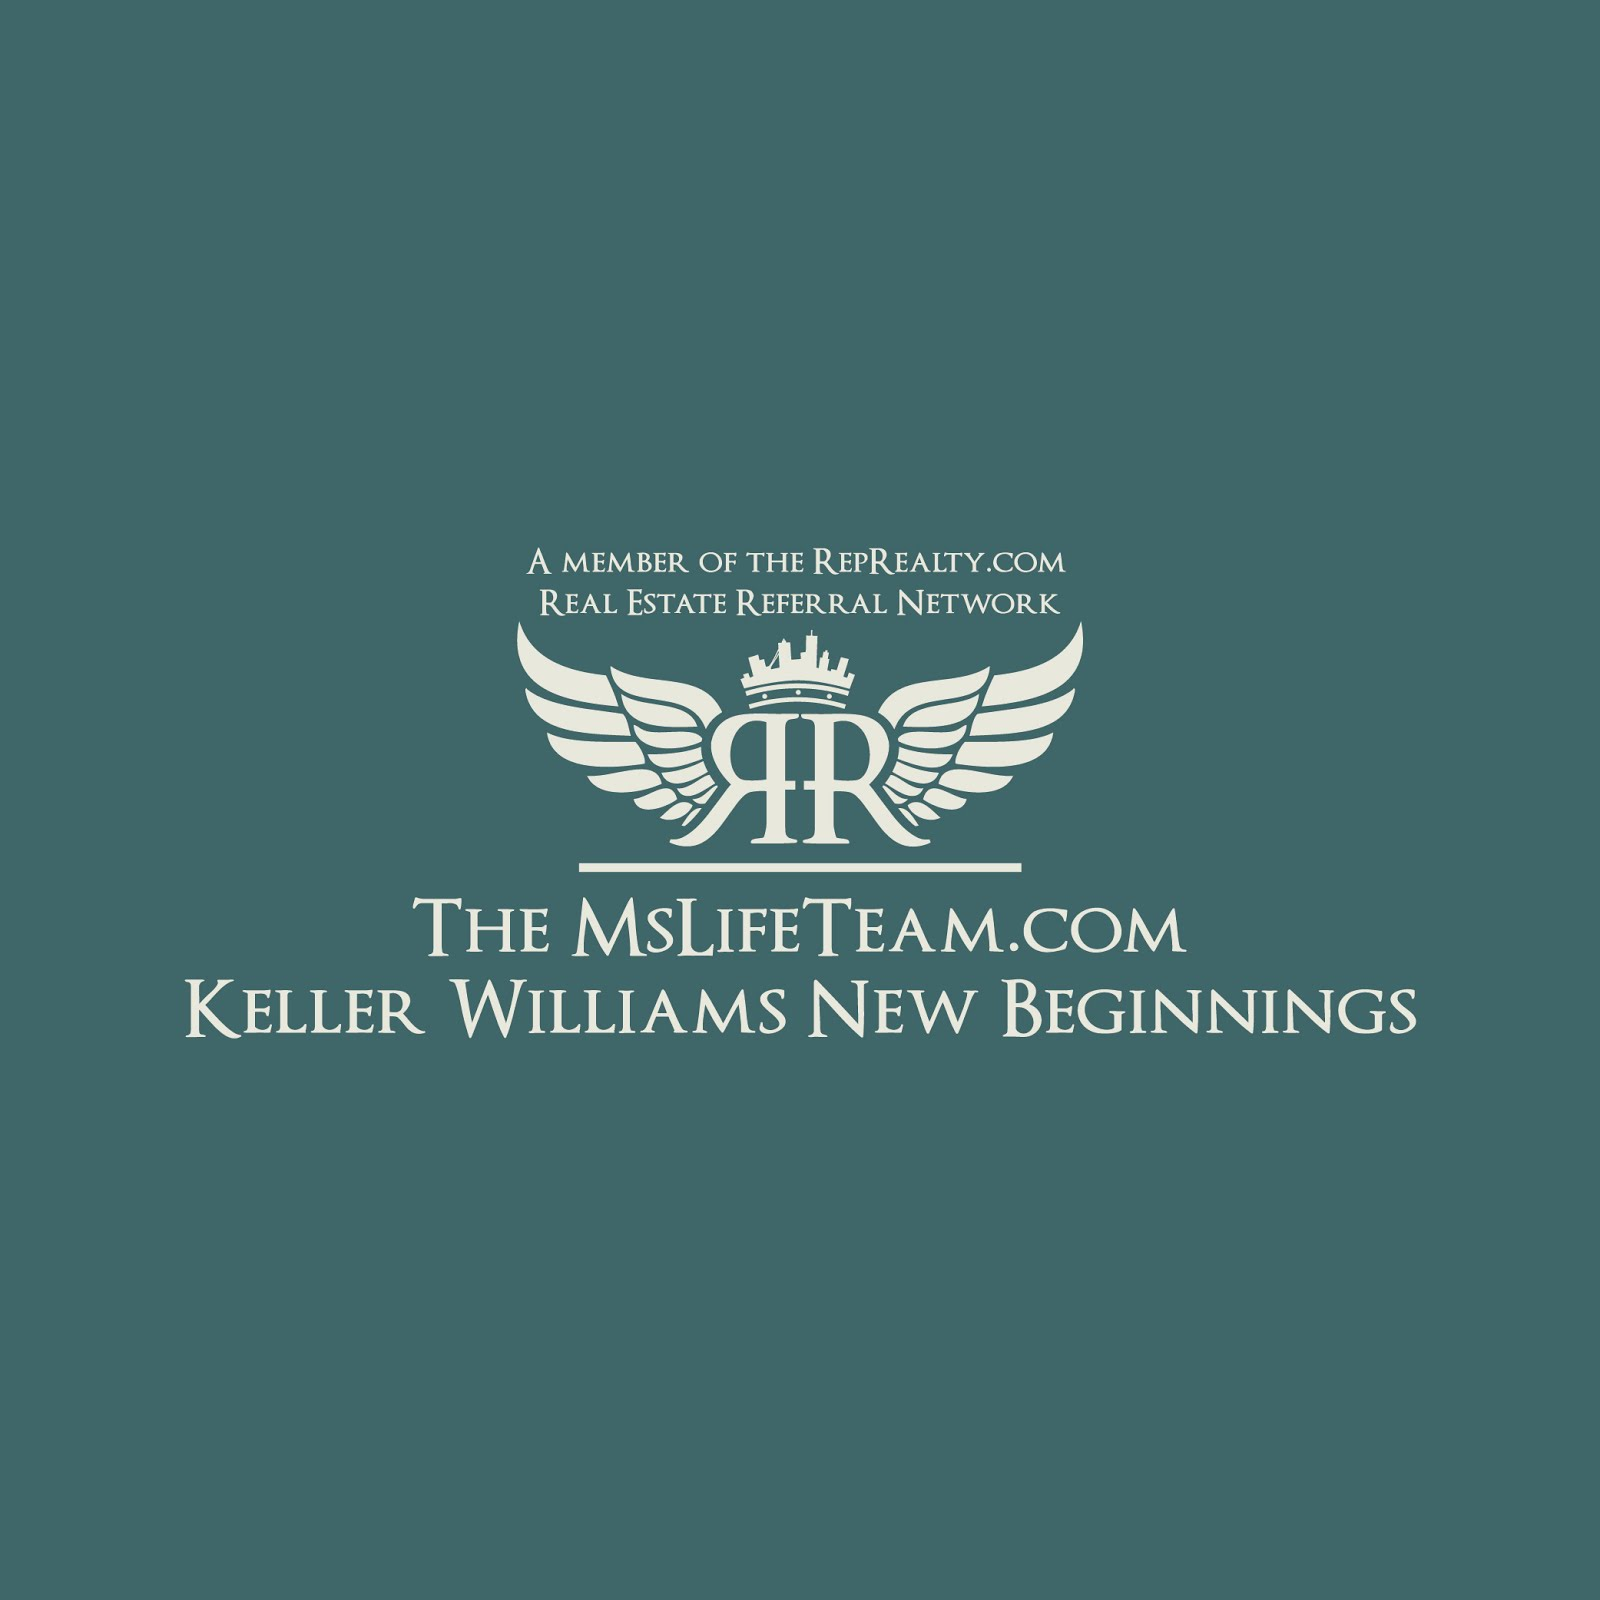 Marcia Landers - Keller Williams New Beginnings